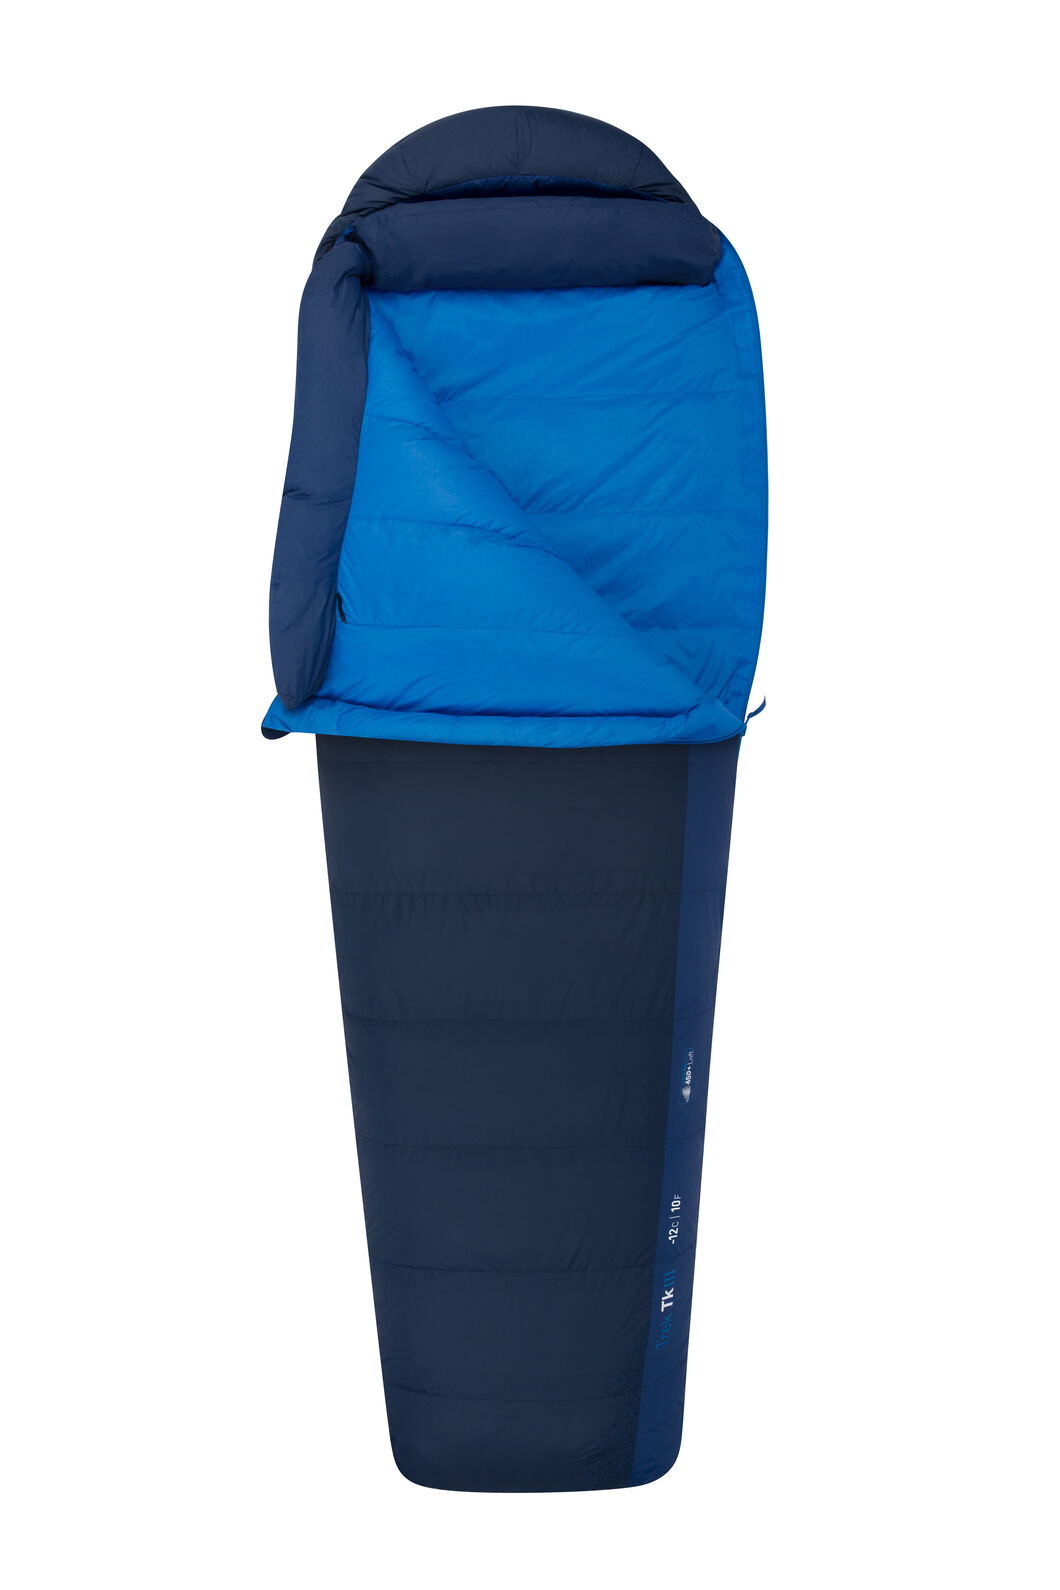 Sea to Summit Trek TKIII Sleeping Bag - Long, Blue, hi-res